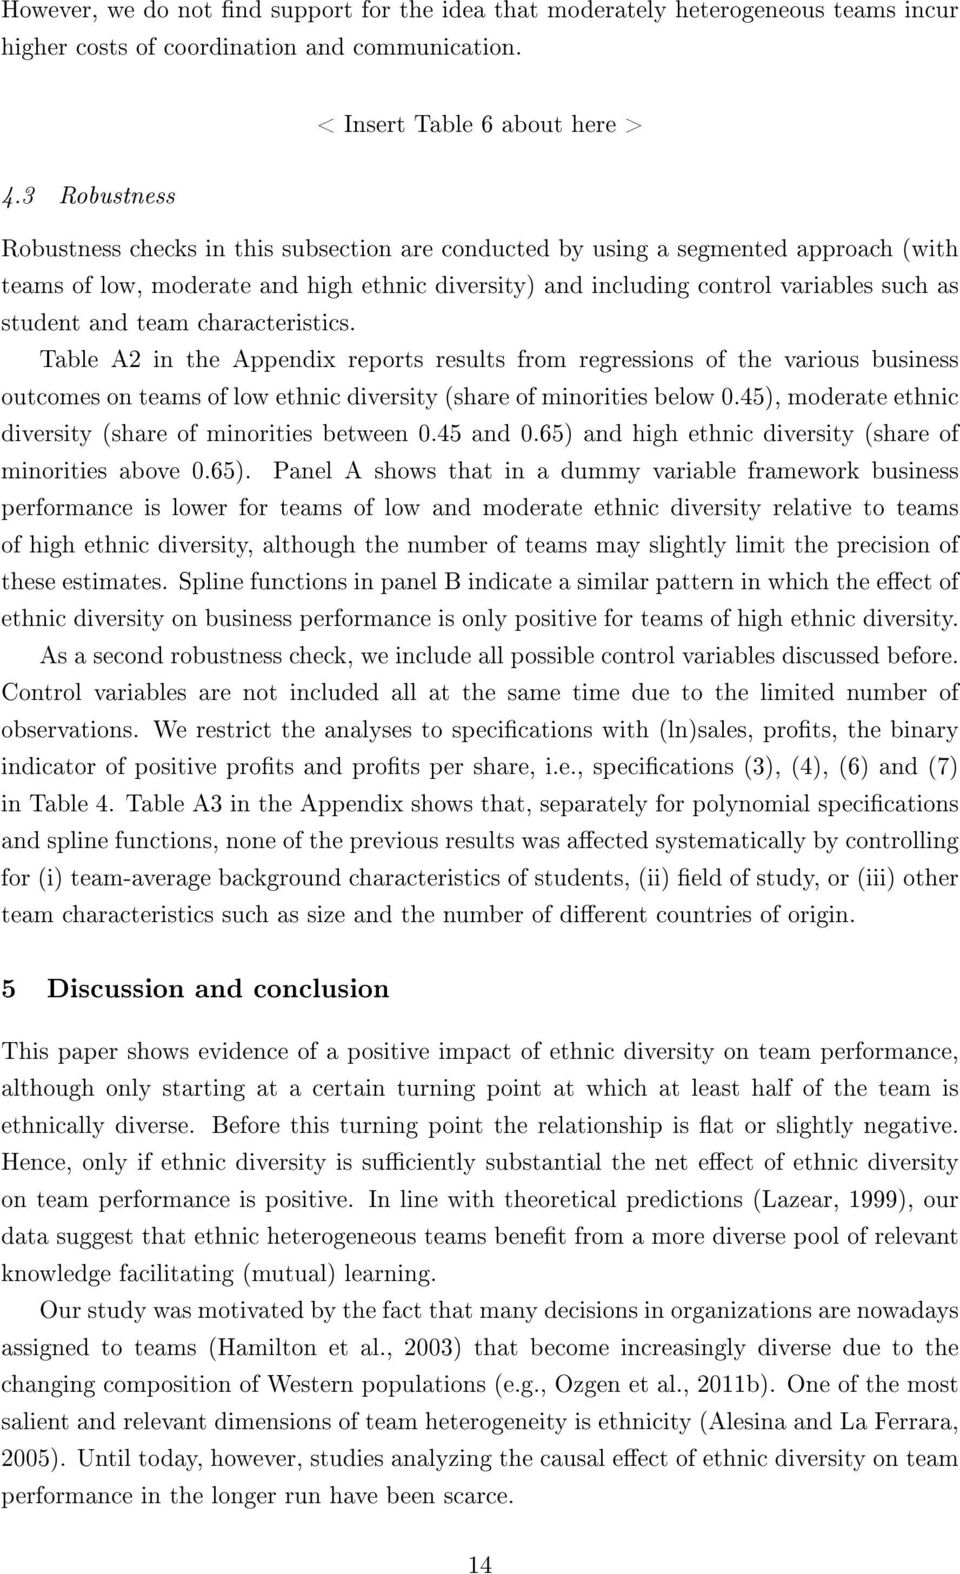 and team characteristics. Table A2 in the Appendix reports results from regressions of the various business outcomes on teams of low ethnic diversity (share of minorities below 0.